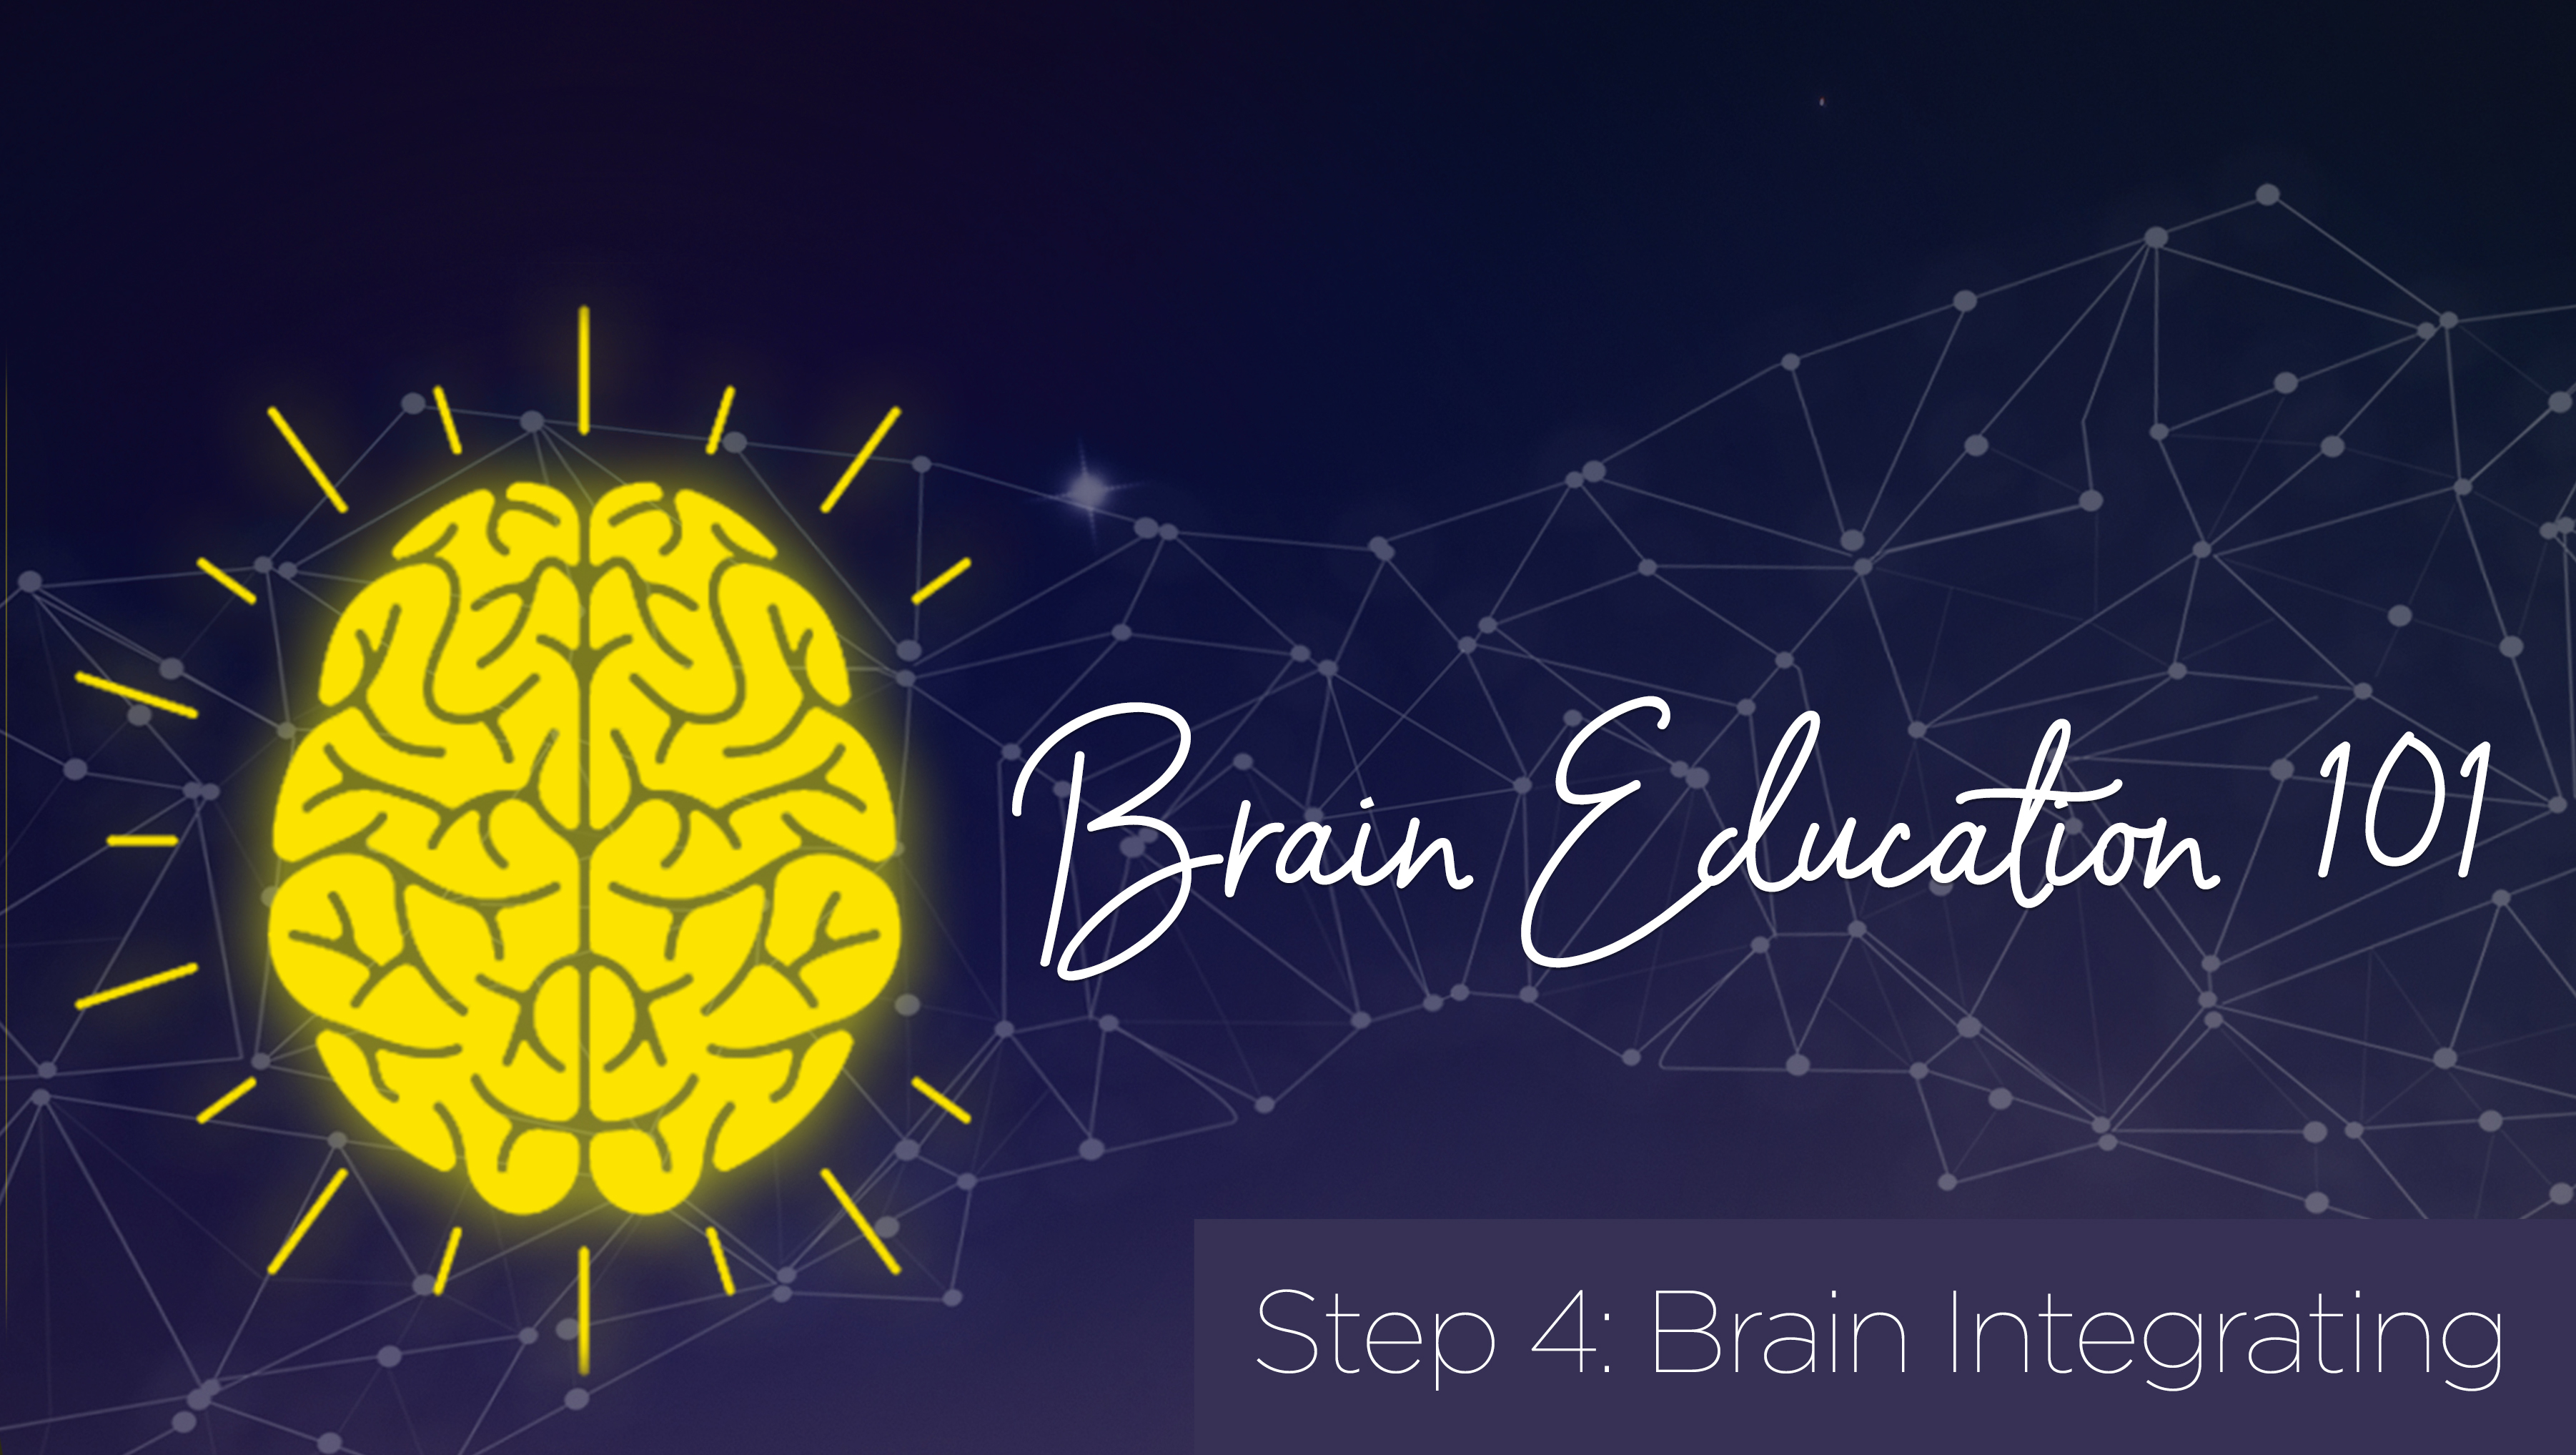 Step 4 Brain Integrating